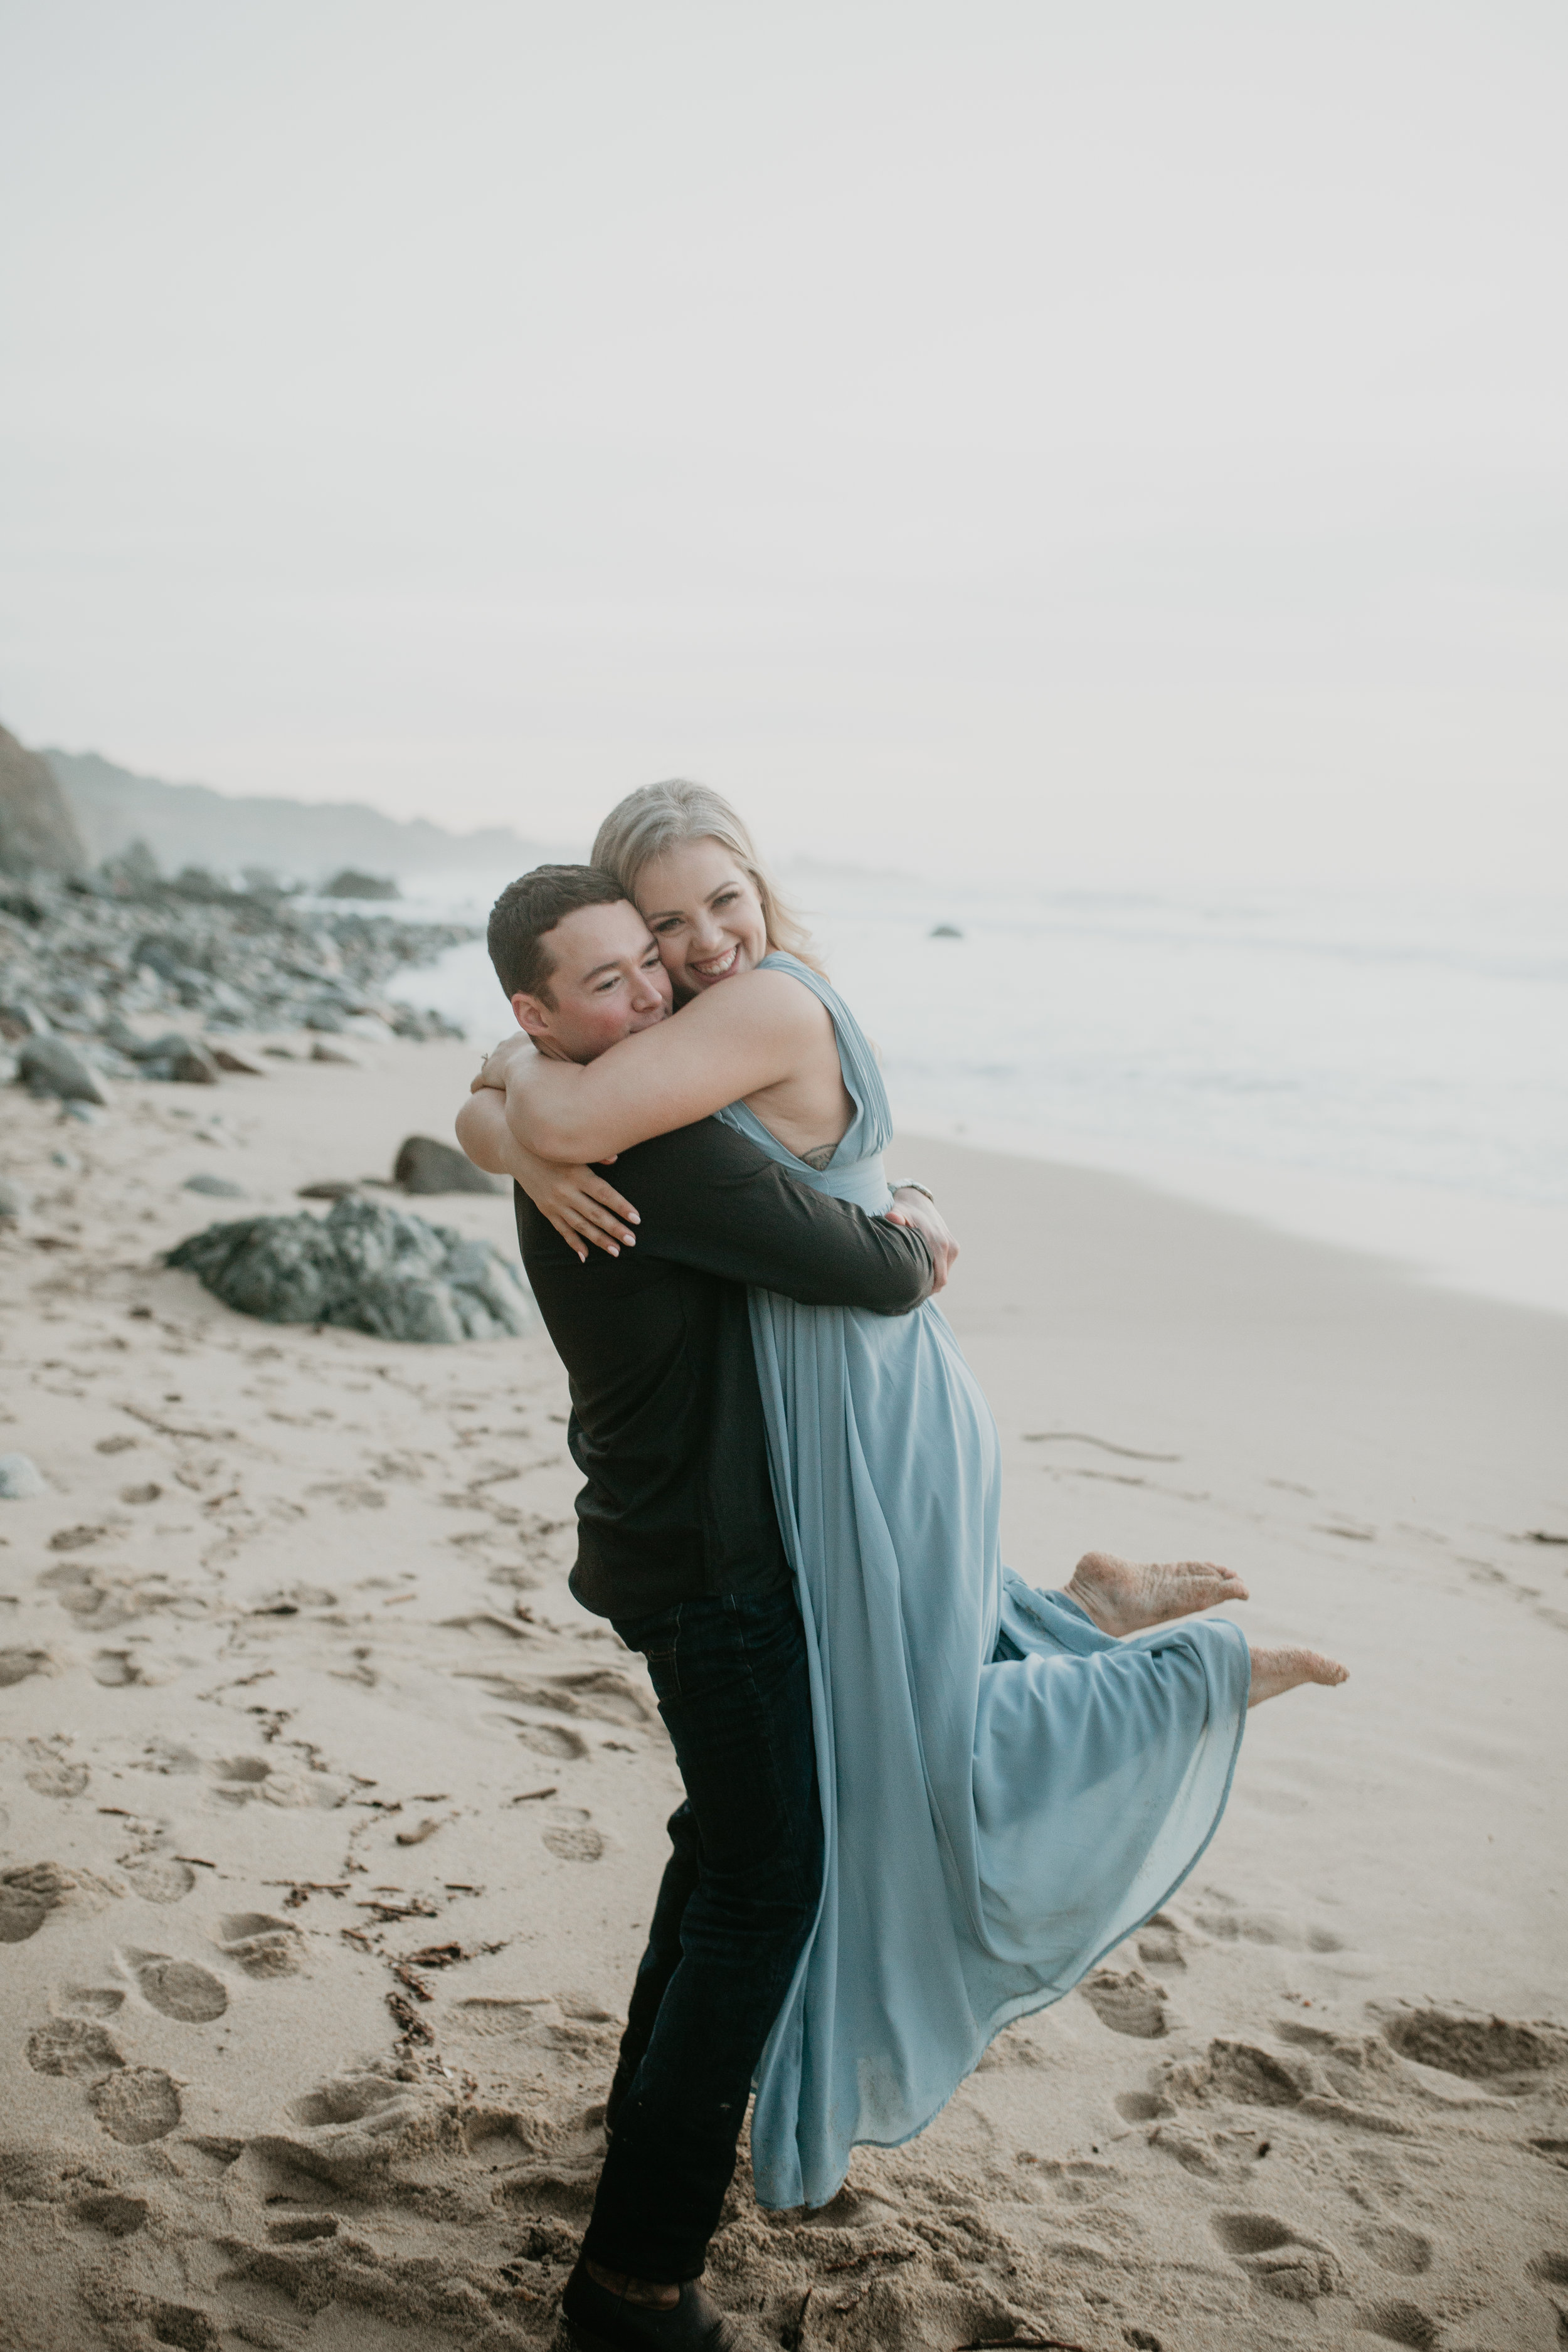 Nicole-Daacke-Photography-big-sur-garrapatta-state-park-adventurous-engagement-session-bixy-bridge-elopement-big-sur-wedding-photographer-monterey-elopement-photographer-california-golden-sunset-coast-photos-57.jpg